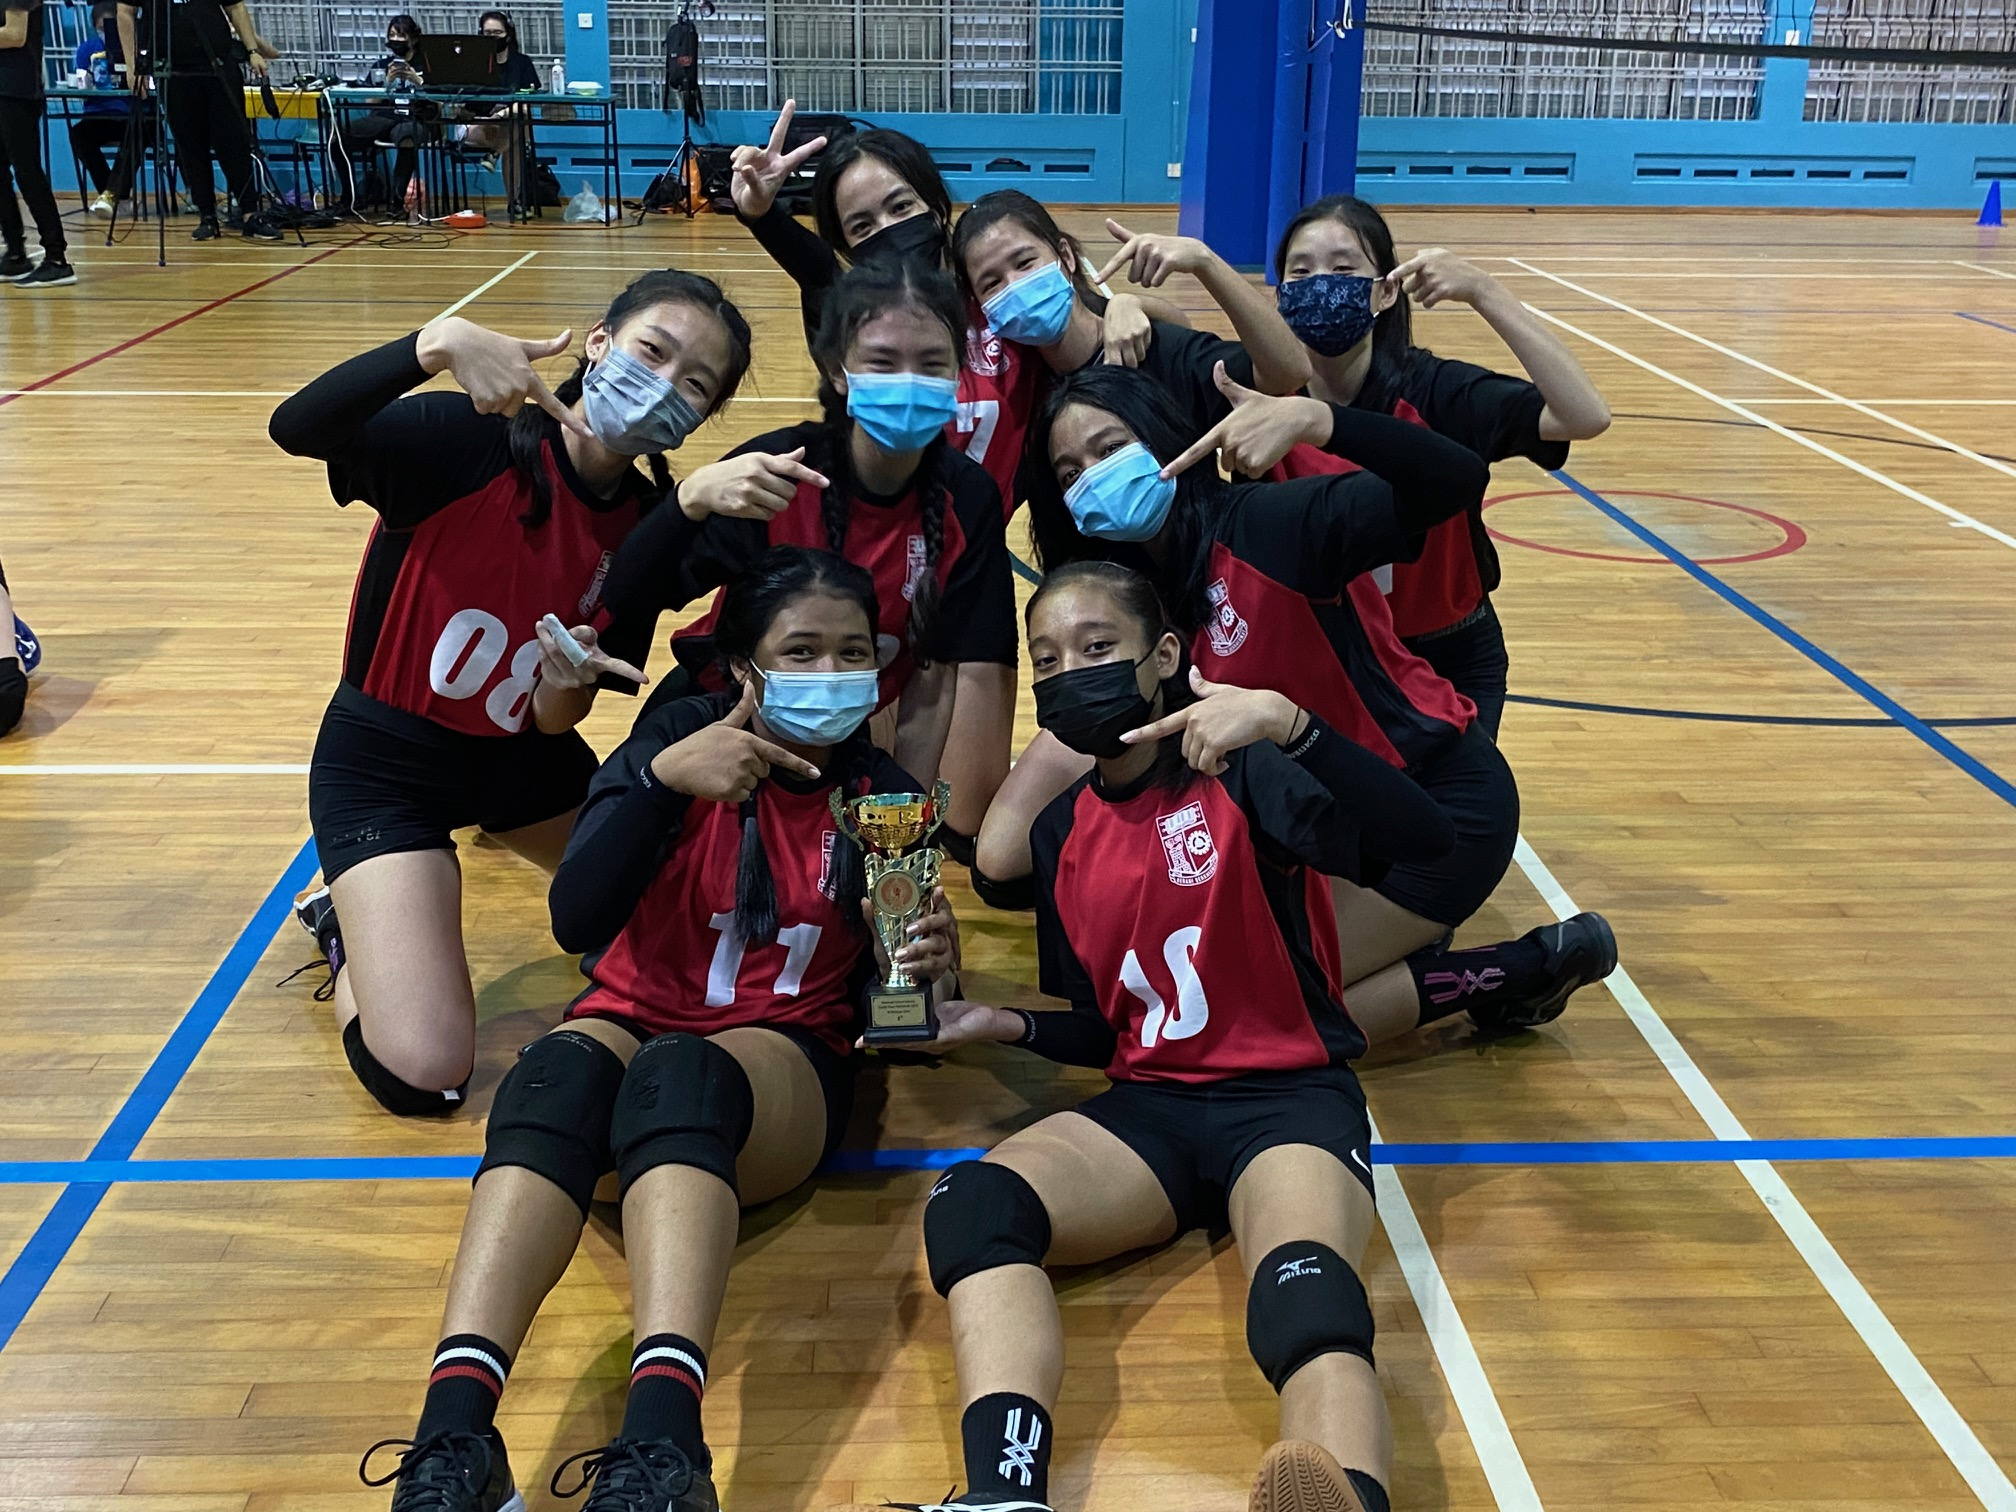 NSG South Zone B Div girls volleyball final - Queenstown (red)-1